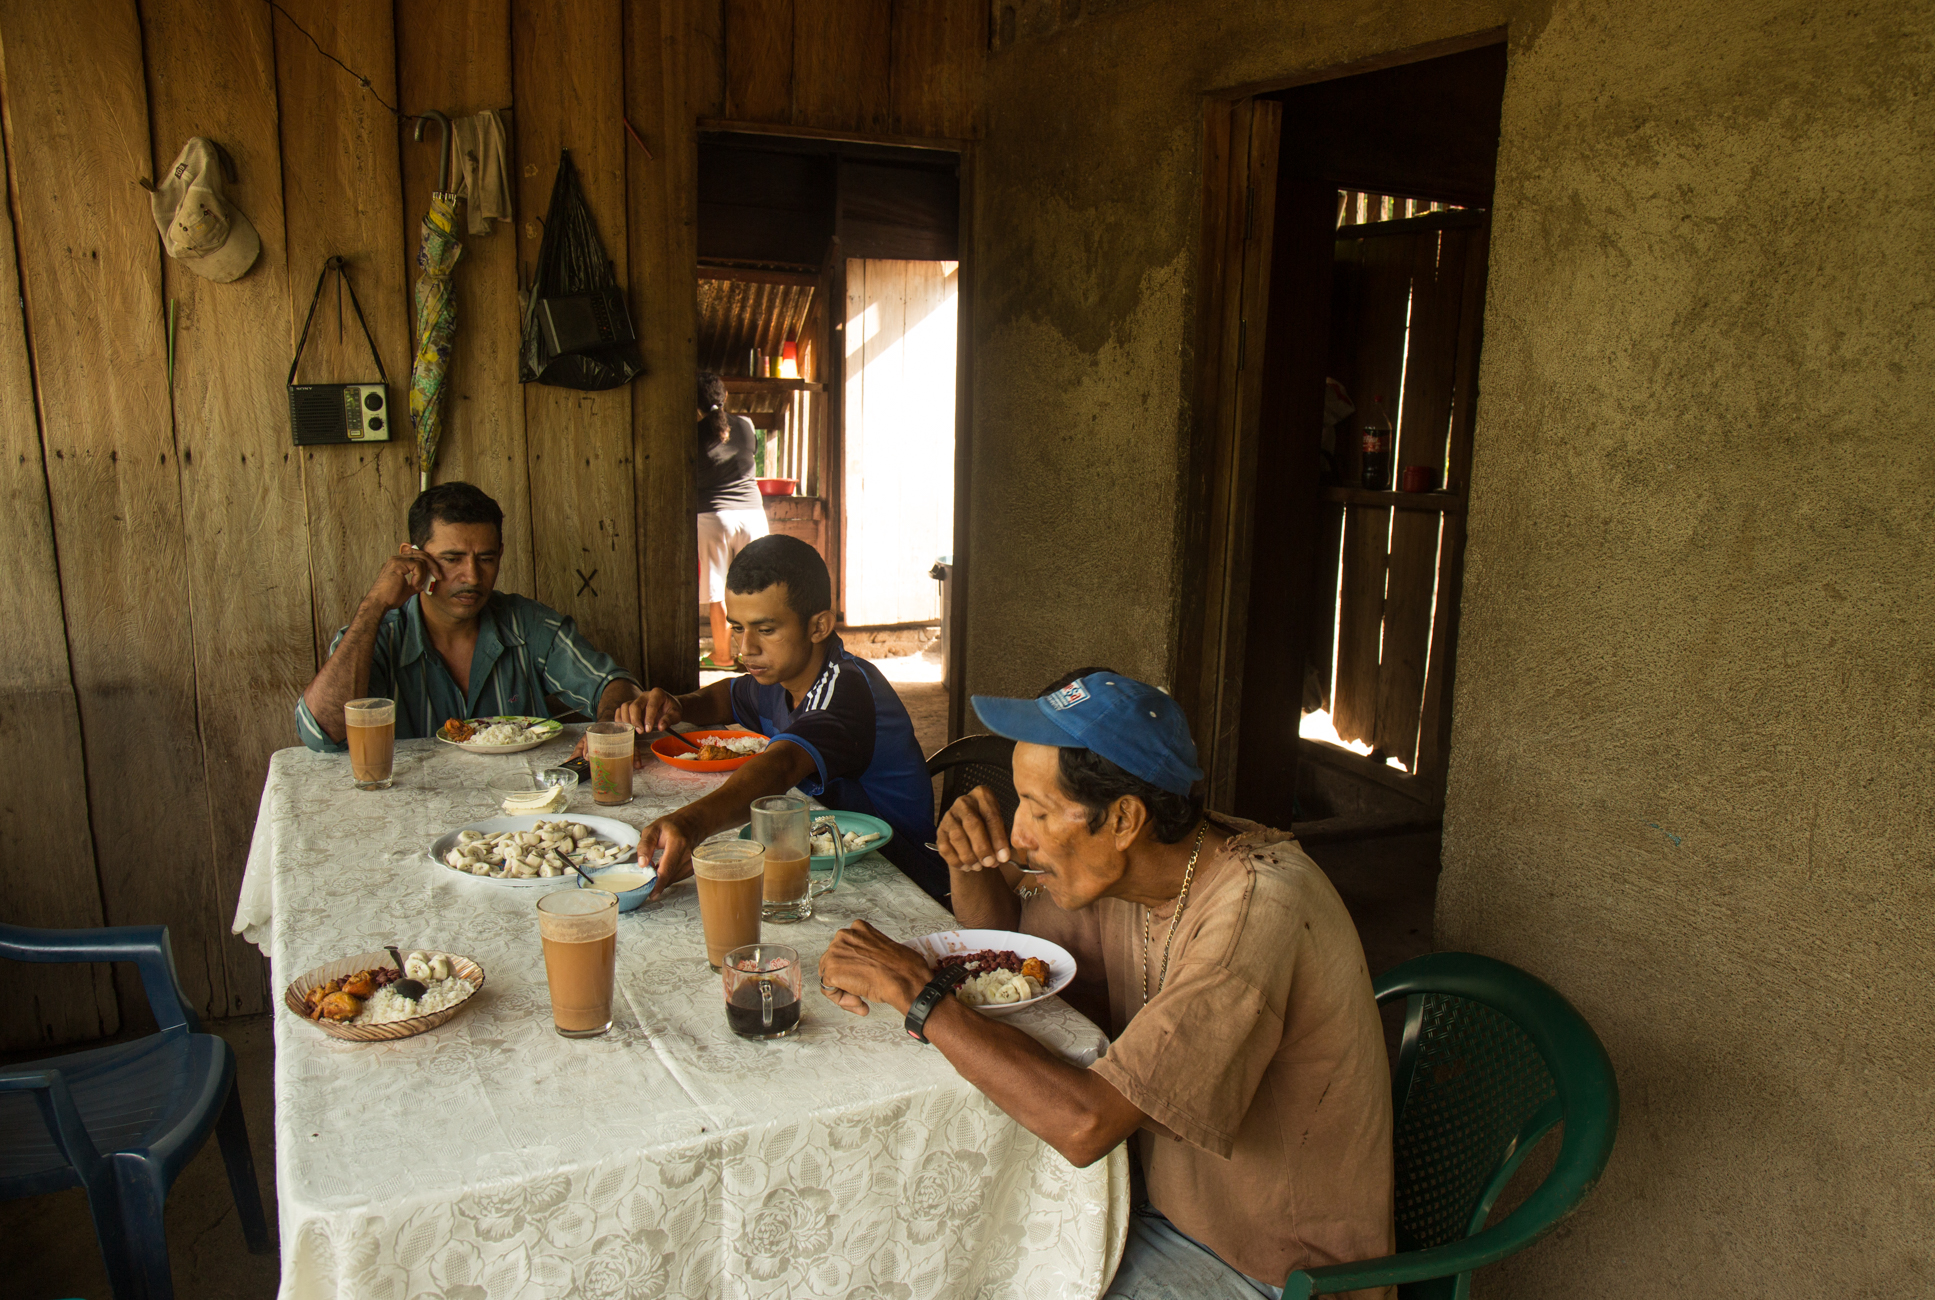 Javier Carmona eats breakfast with his sons Elder and Marcos the morning of a protest in nearby El Tule against the Nicaraguan Canal project and the Ley 840. Javier, a community leader and organizer with the Consejo Nacional which is fighting against the Ley 840 and the proposed Canal project by the government in order to protect their land. The proposed route and 20 km band of expropriation places his land under threat.